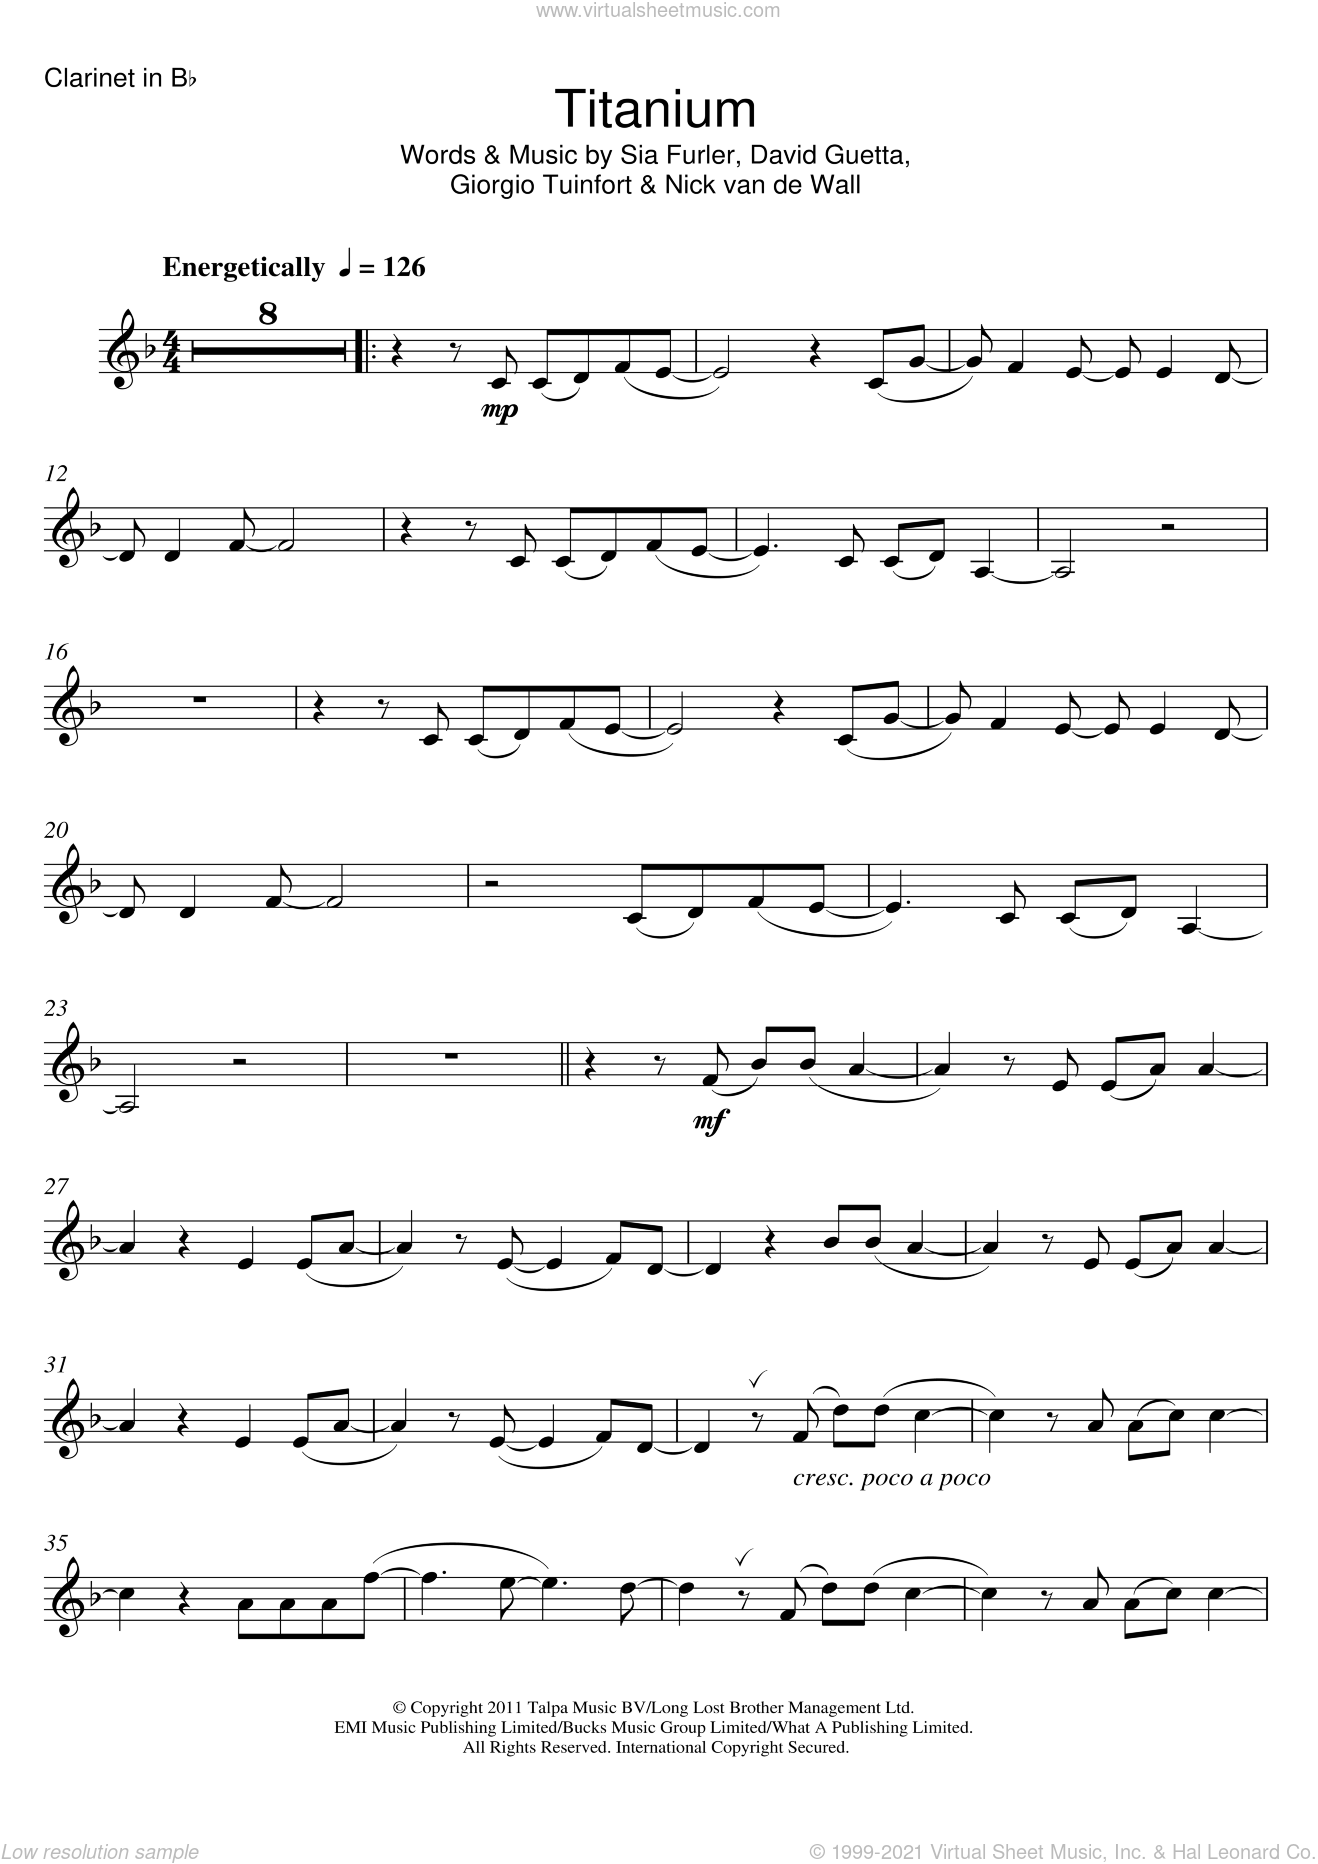 Titanium (featuring Sia) sheet music for clarinet solo by David Guetta, Sia, Giorgio Tuinfort, Nick van de Wall and Sia Furler, intermediate skill level